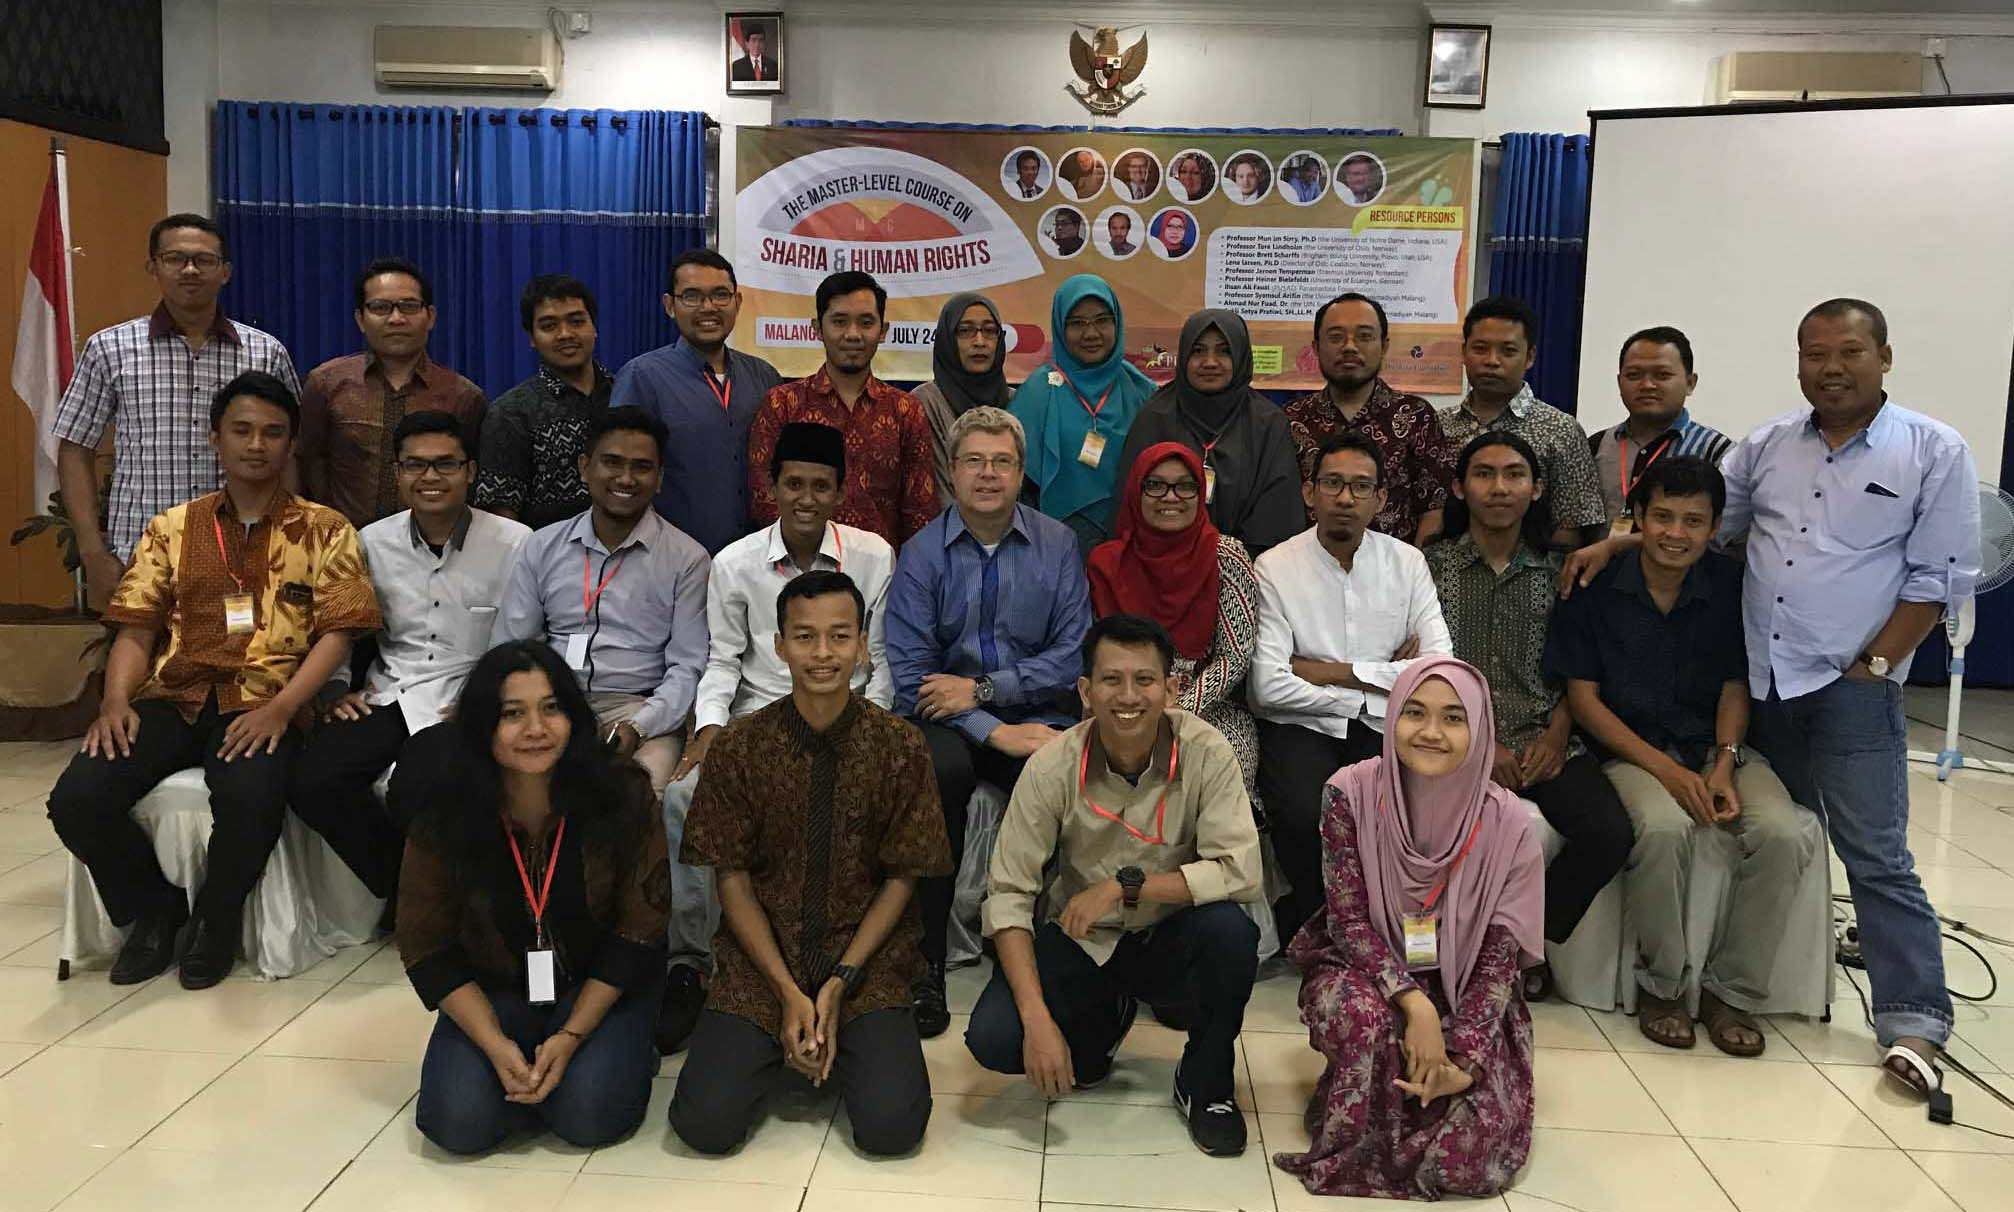 Image for Scharffs Lectures as Visiting Professor, Masters Level Course on Shari'a and Human Rights, Muhammadiyah University, Malang, Indonesia